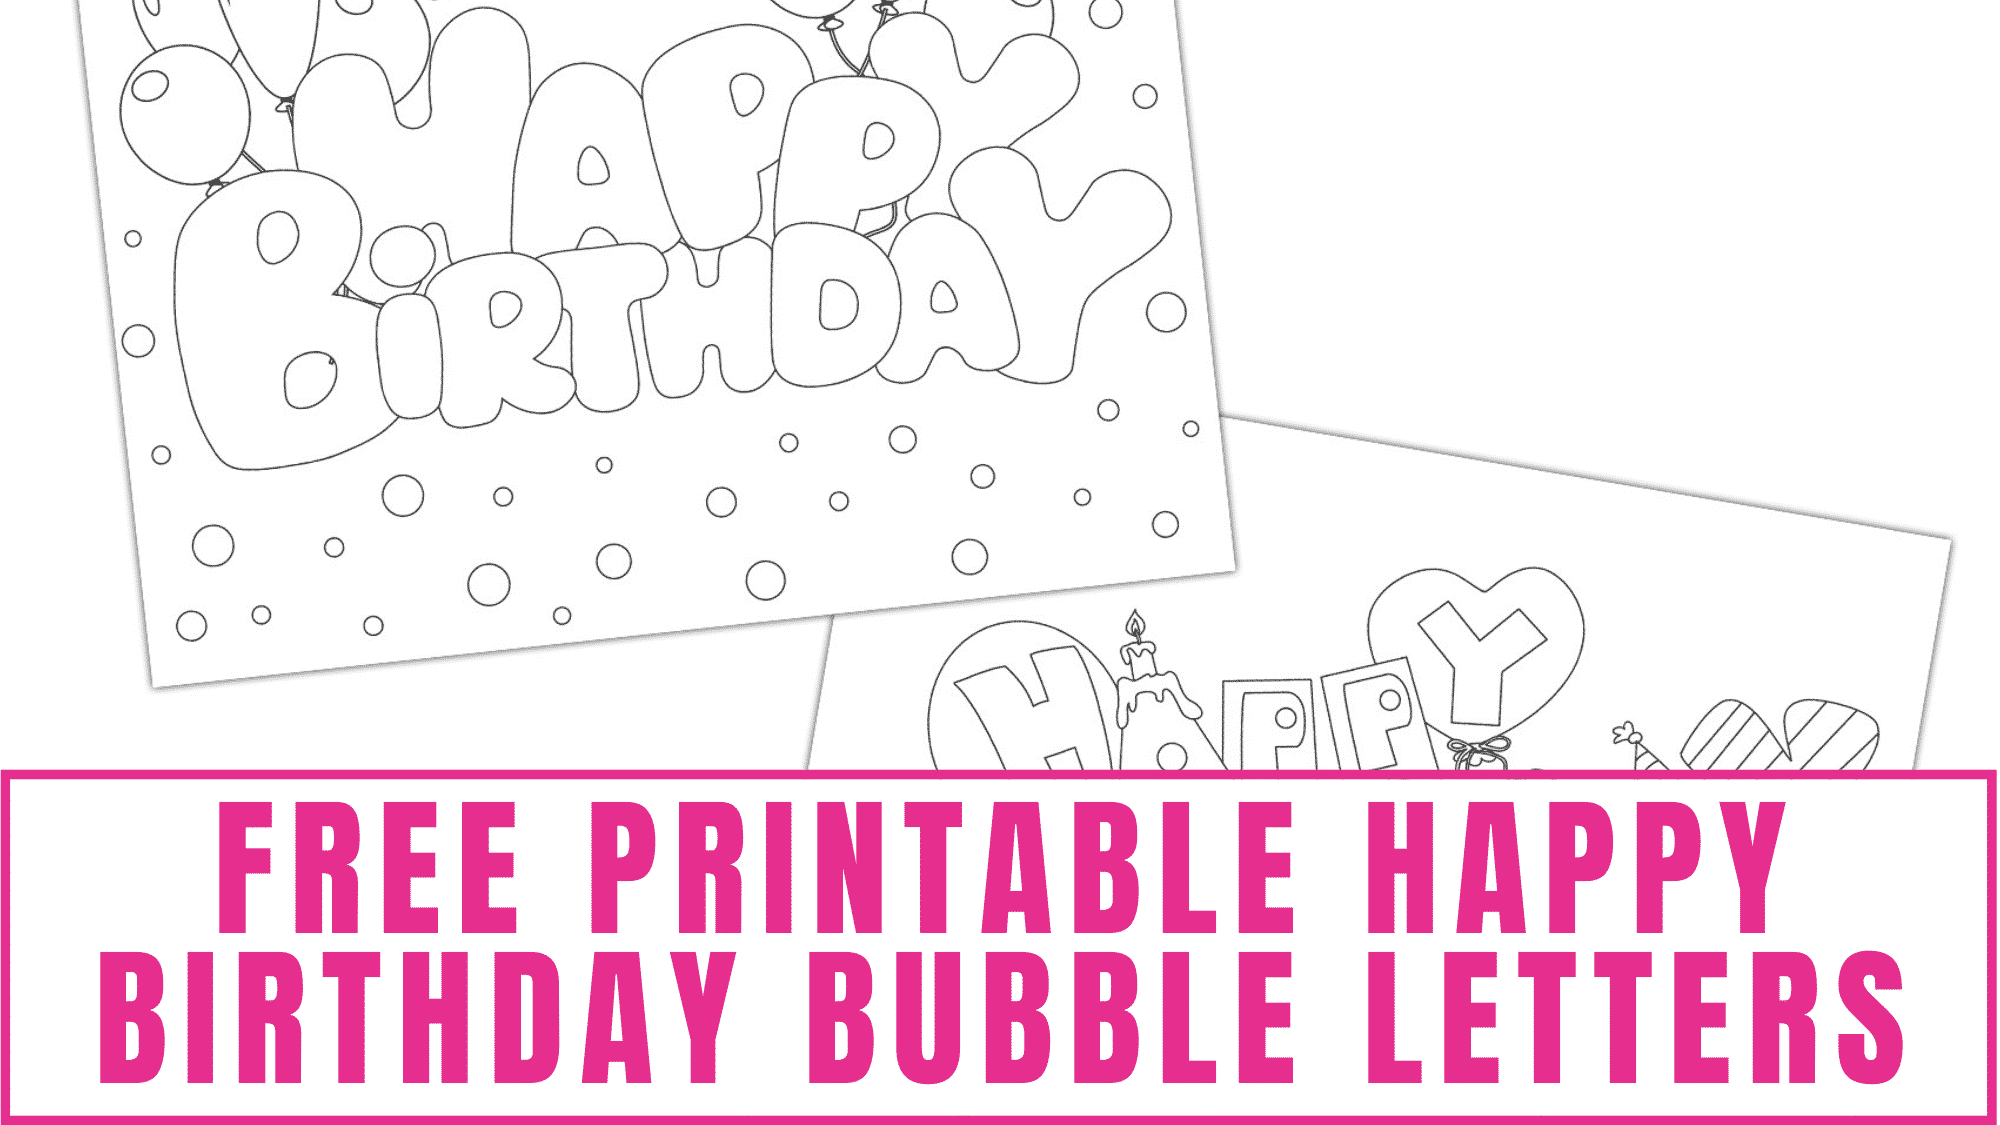 Turn these free printable happy birthday bubble letters into a beautiful homemade happy birthday card or happy birthday sign for someone special.